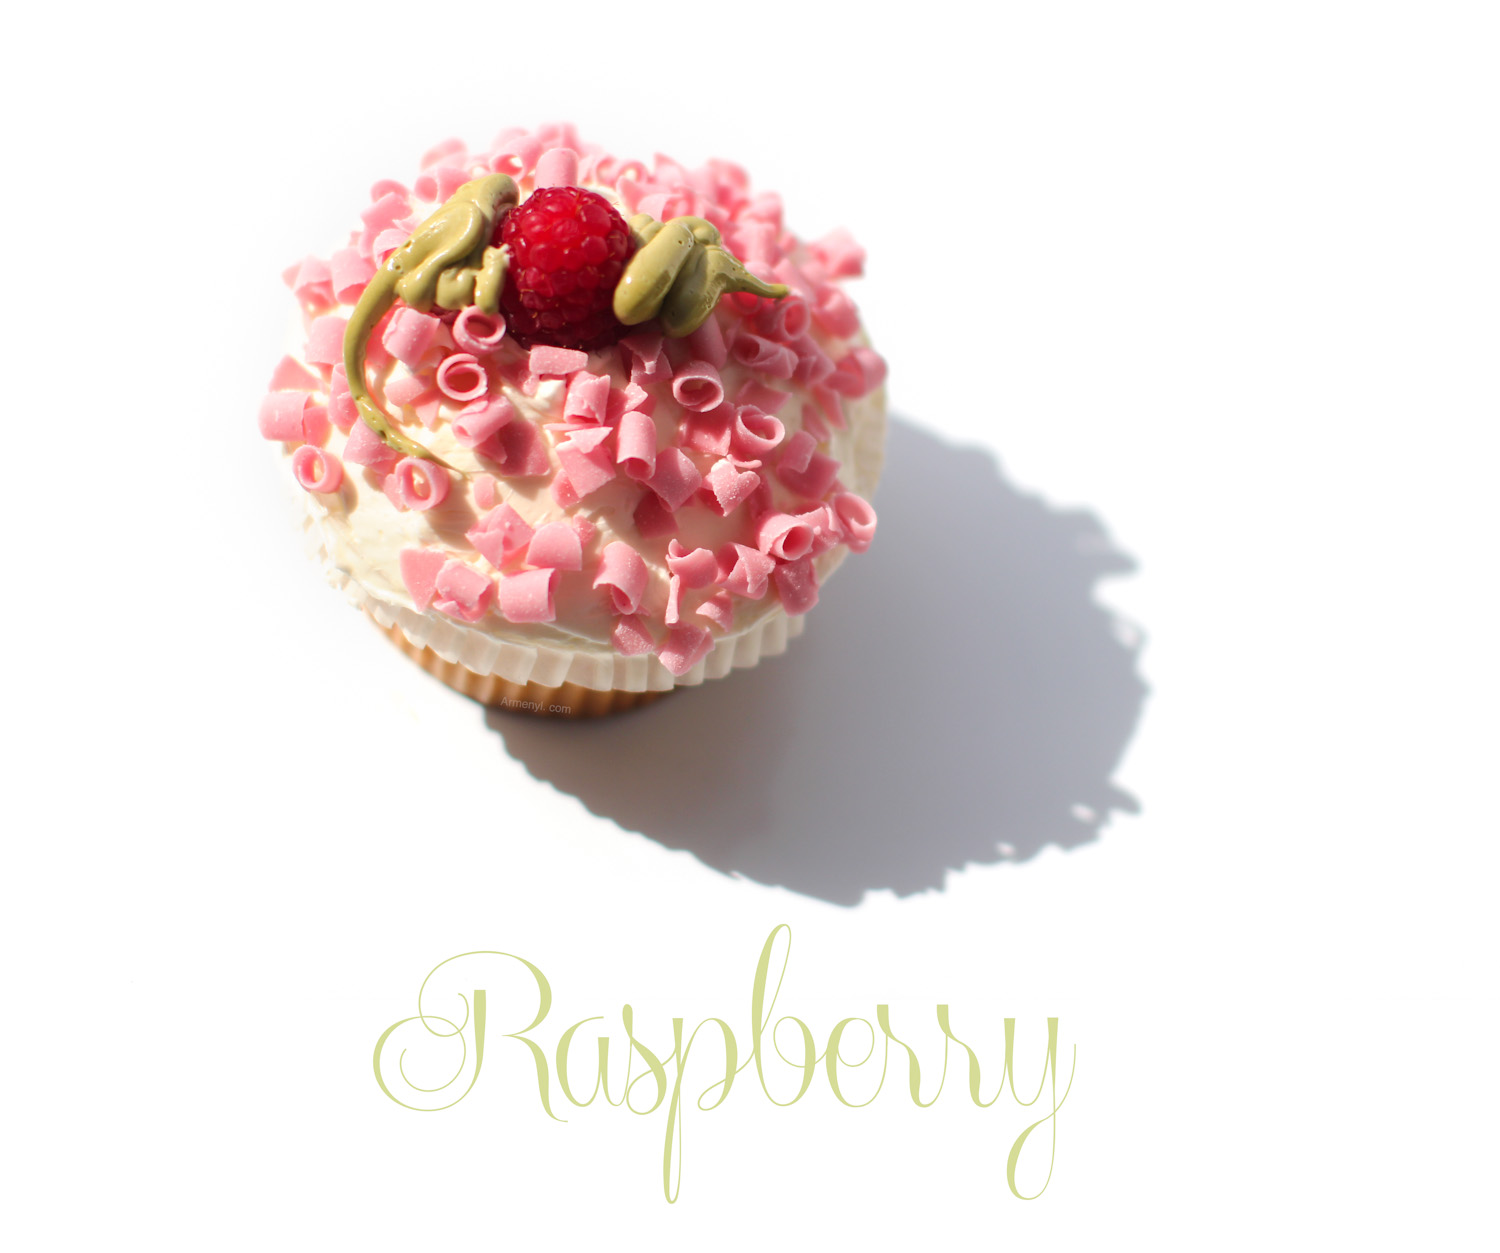 Food Photography Raspberry cupcake from wholefoods by Armenyl.com